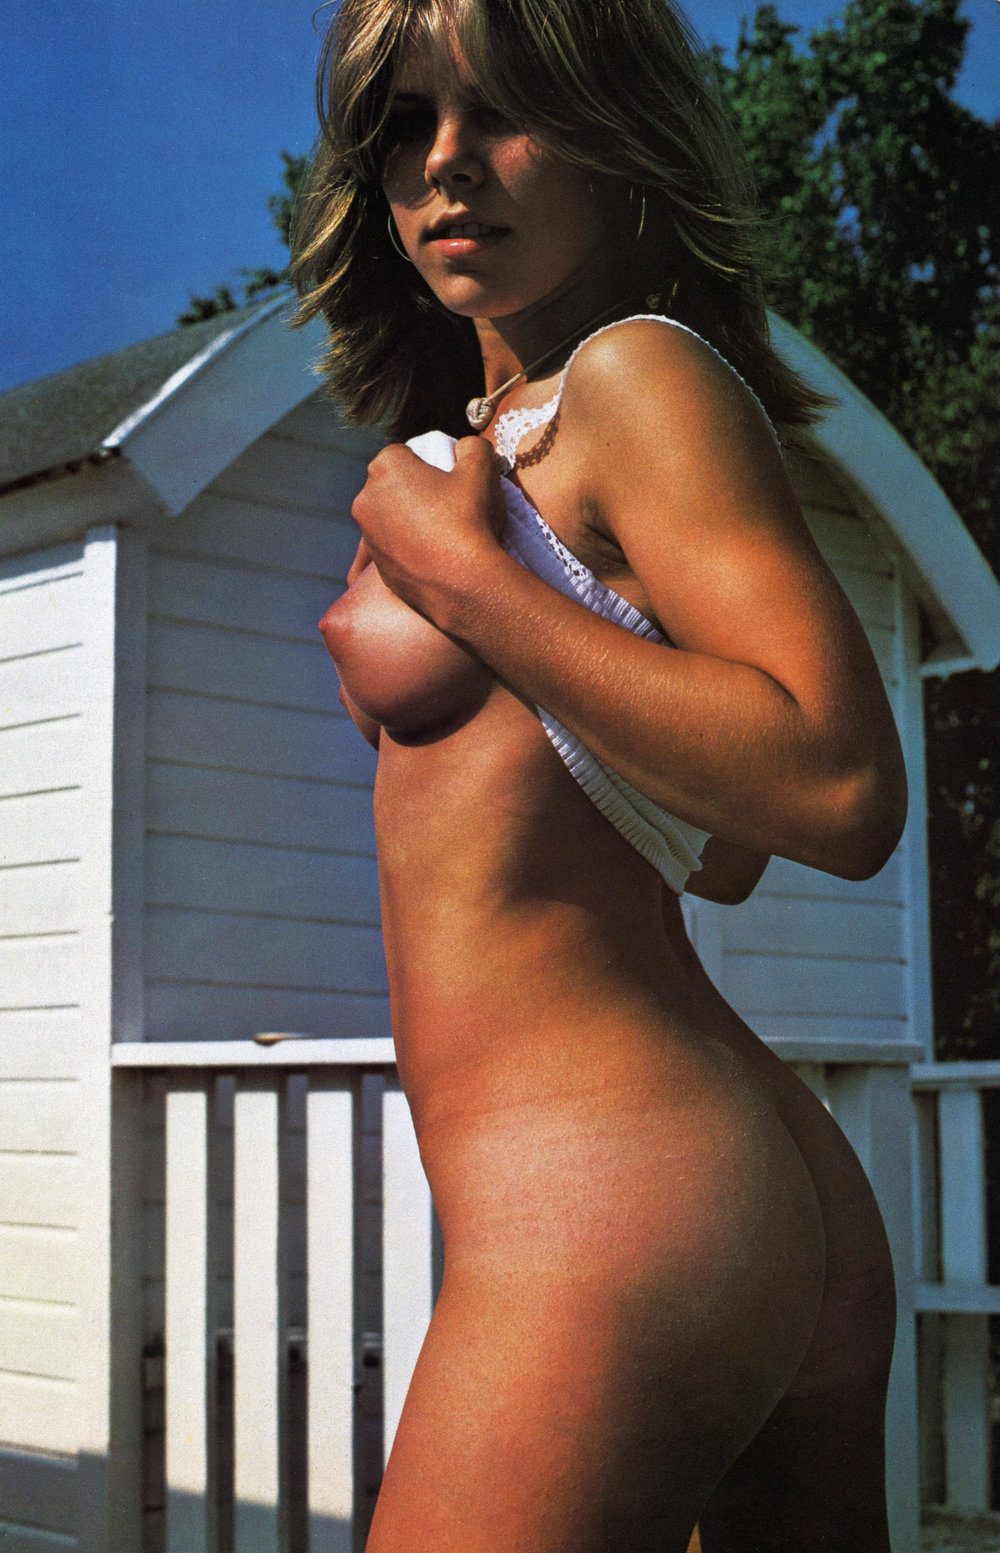 jane-hazeldene-mayfair-magazine-1978